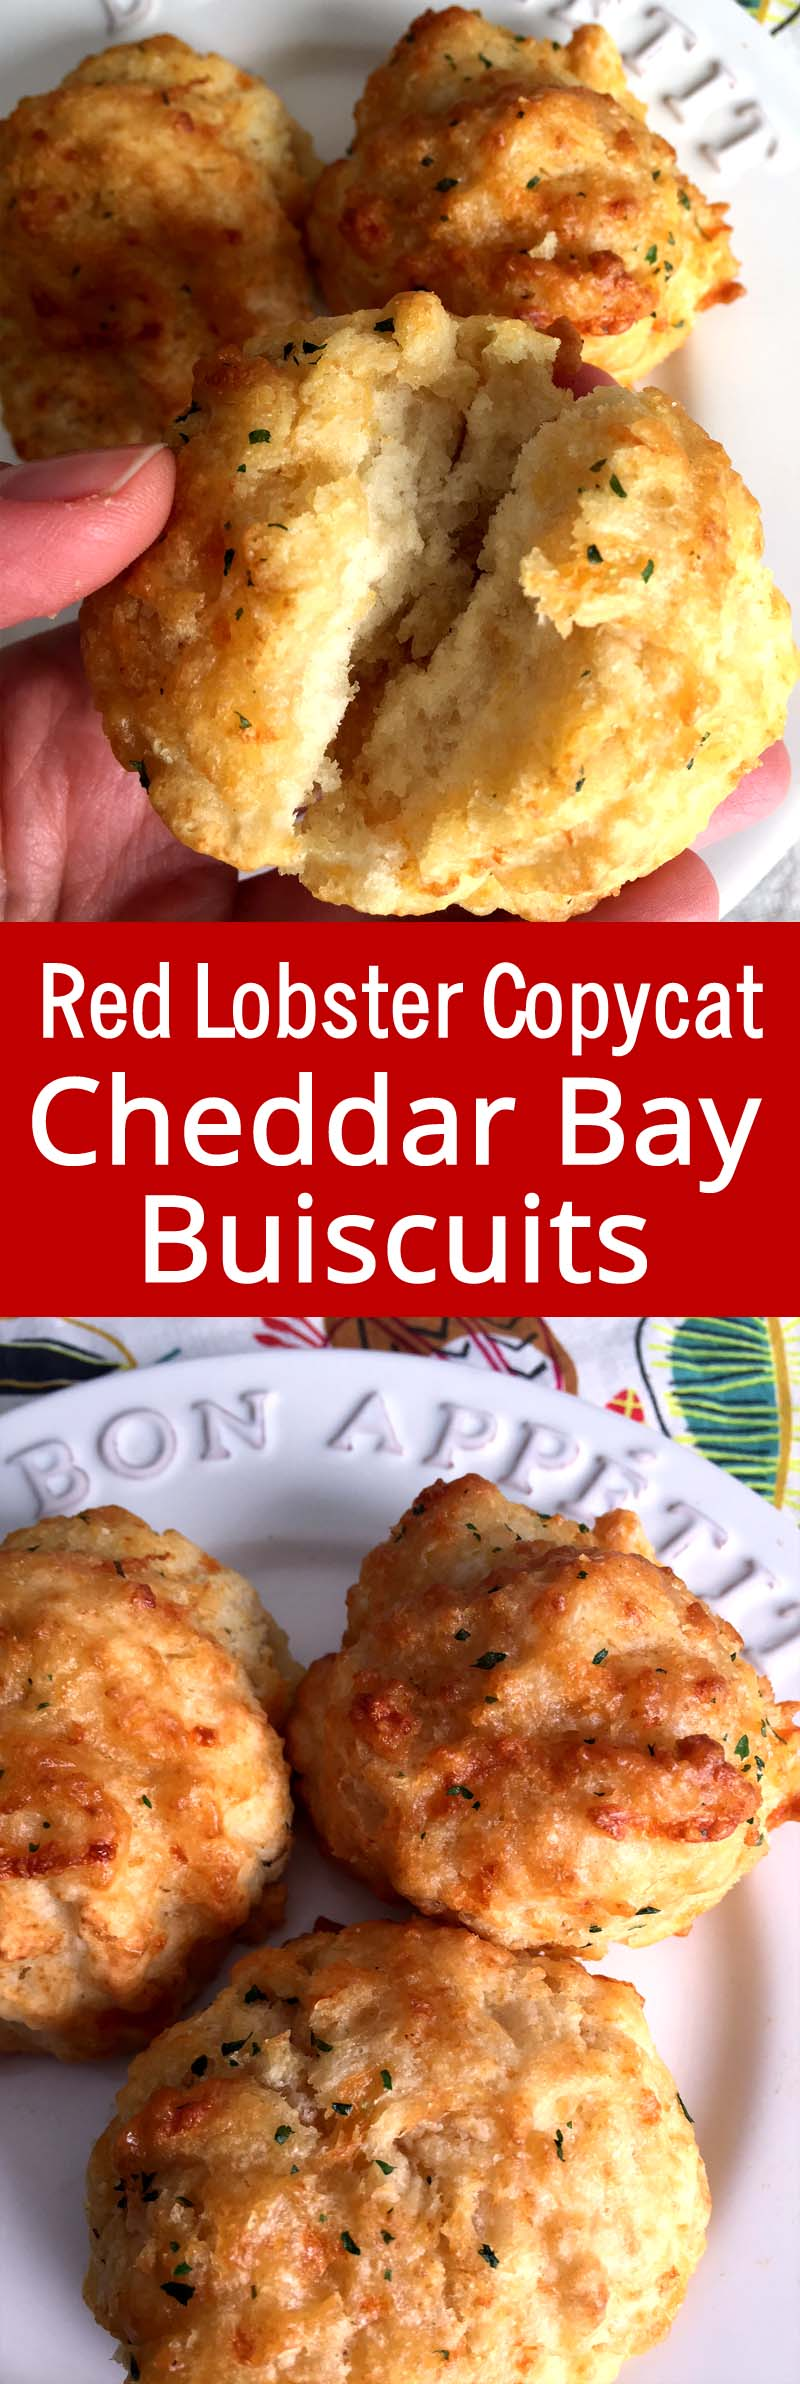 These taste just like Red Lobster biscuits! Super easy to make and so addictive!